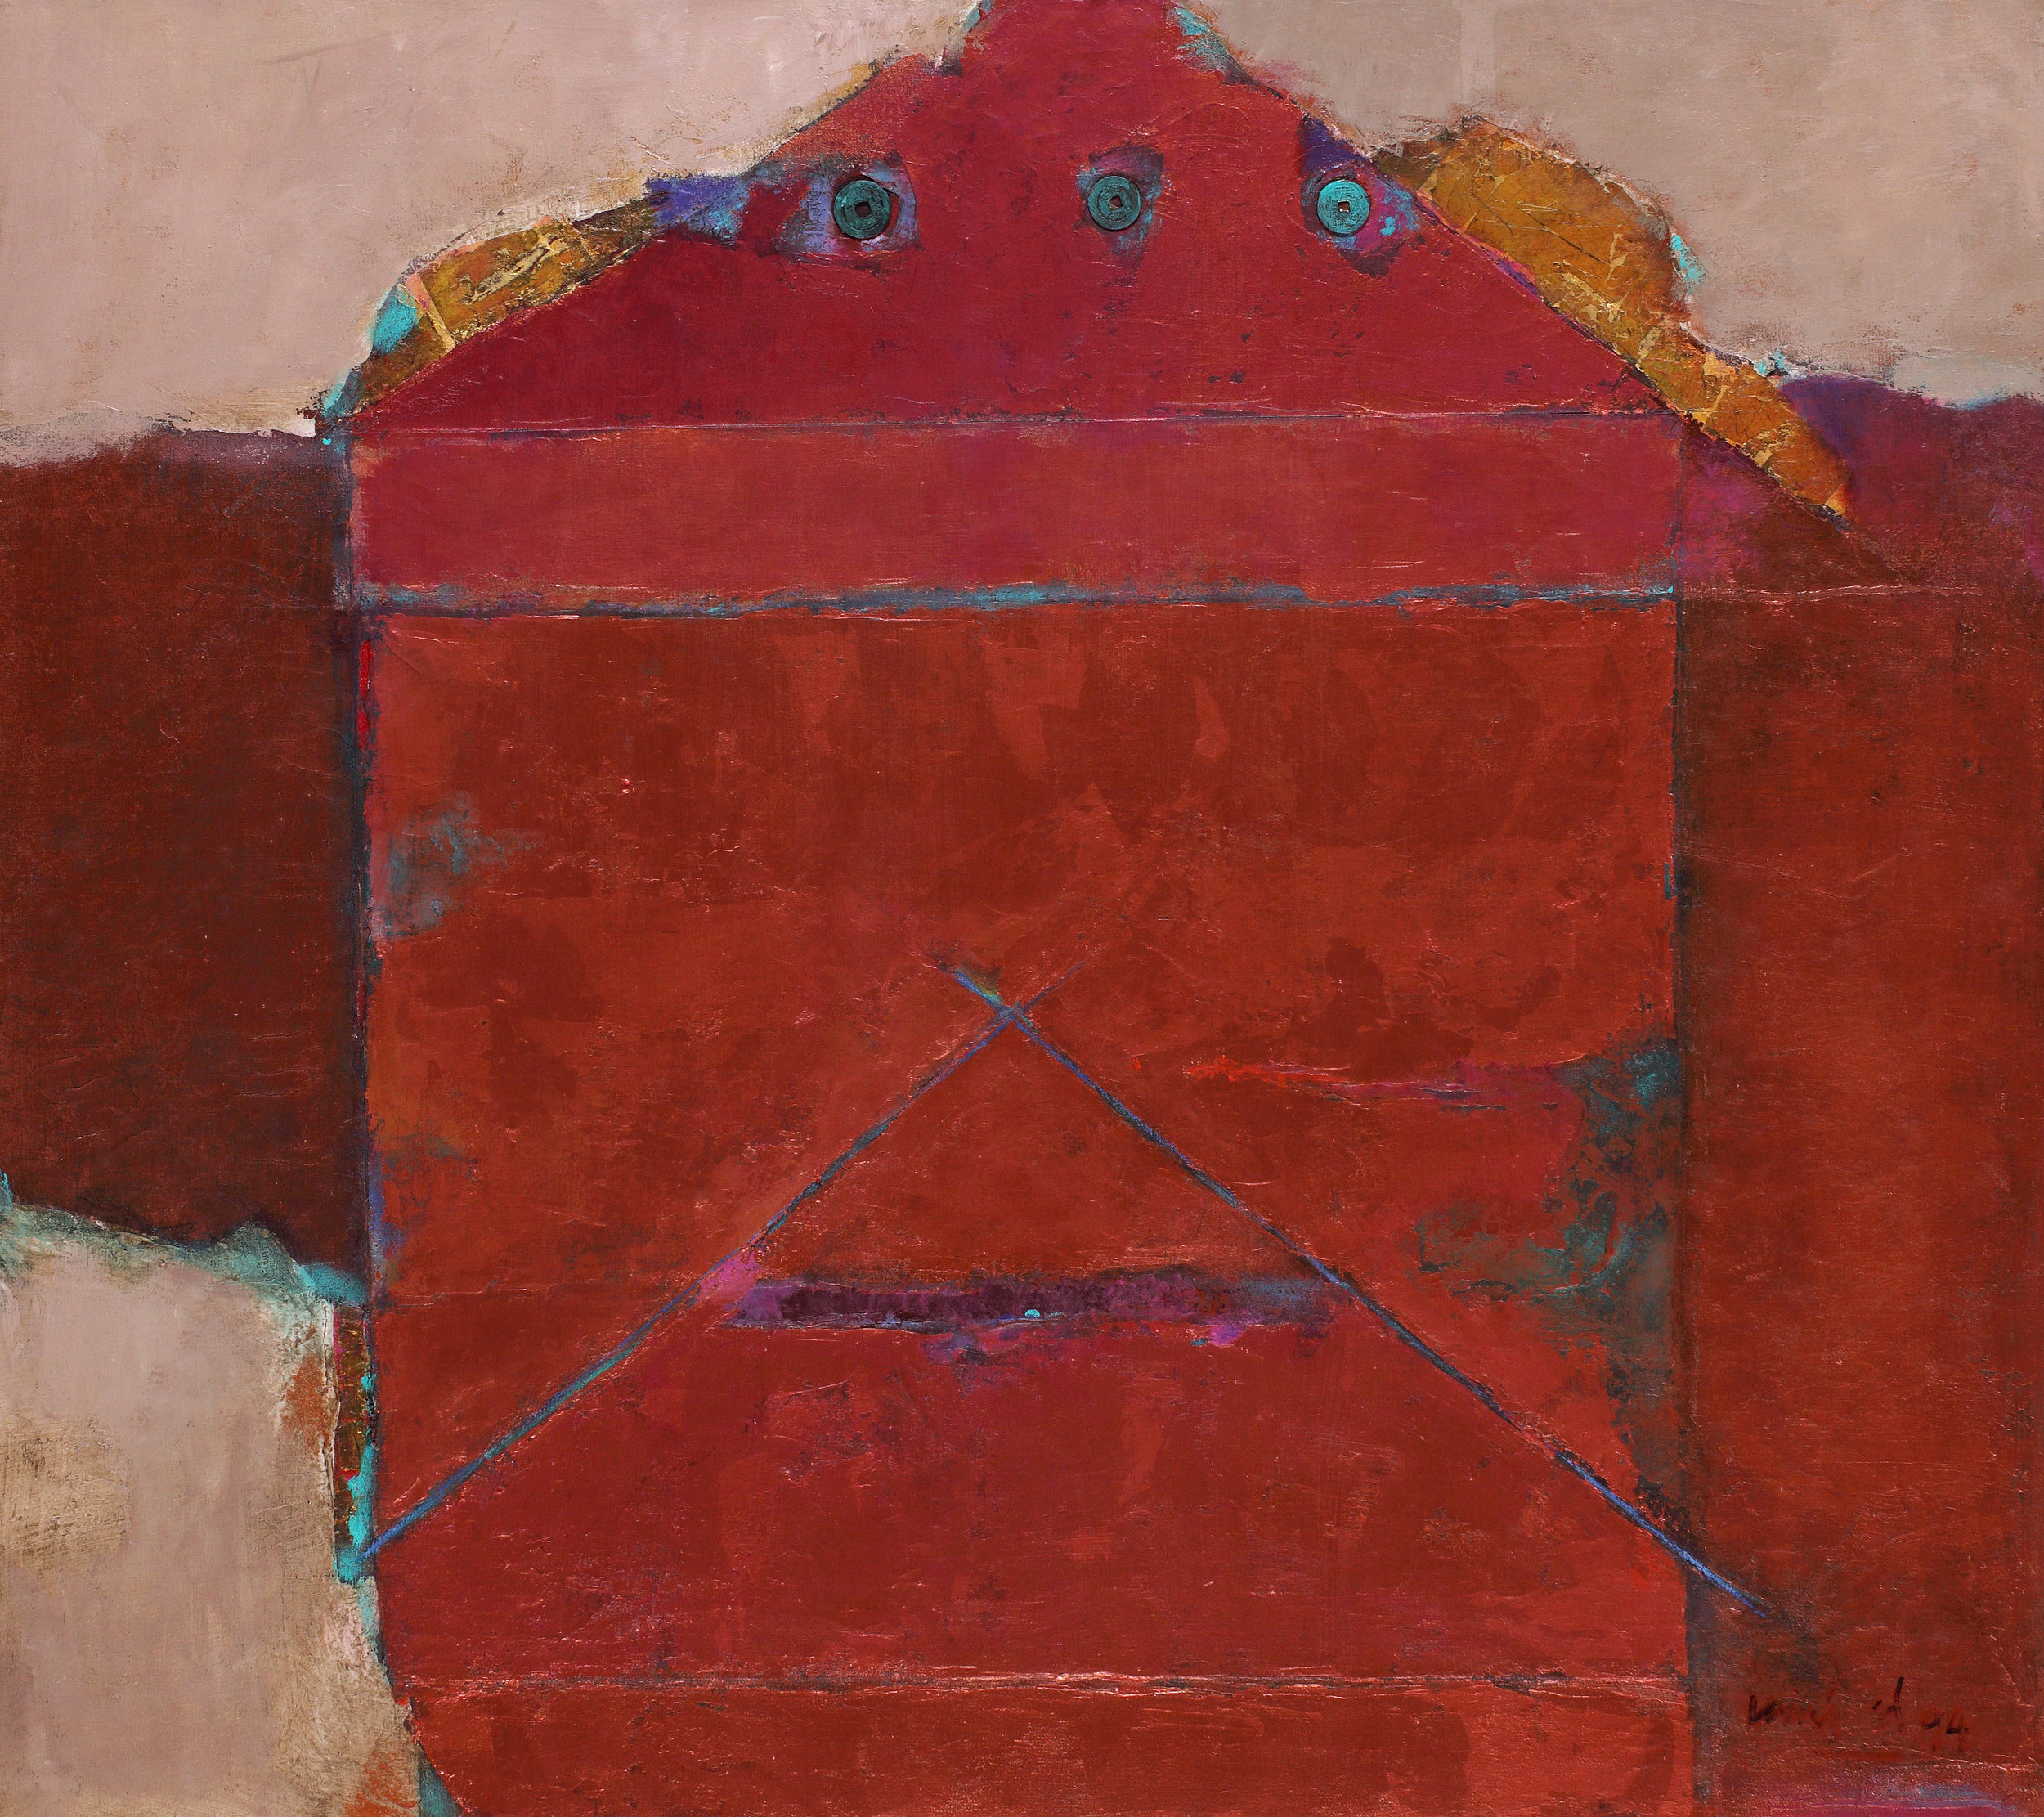 Umi Dahlan,The Mystery of Antique Coin on Copper Red, mixed media on canvas, 80 x 90 cm, 1994.jpg